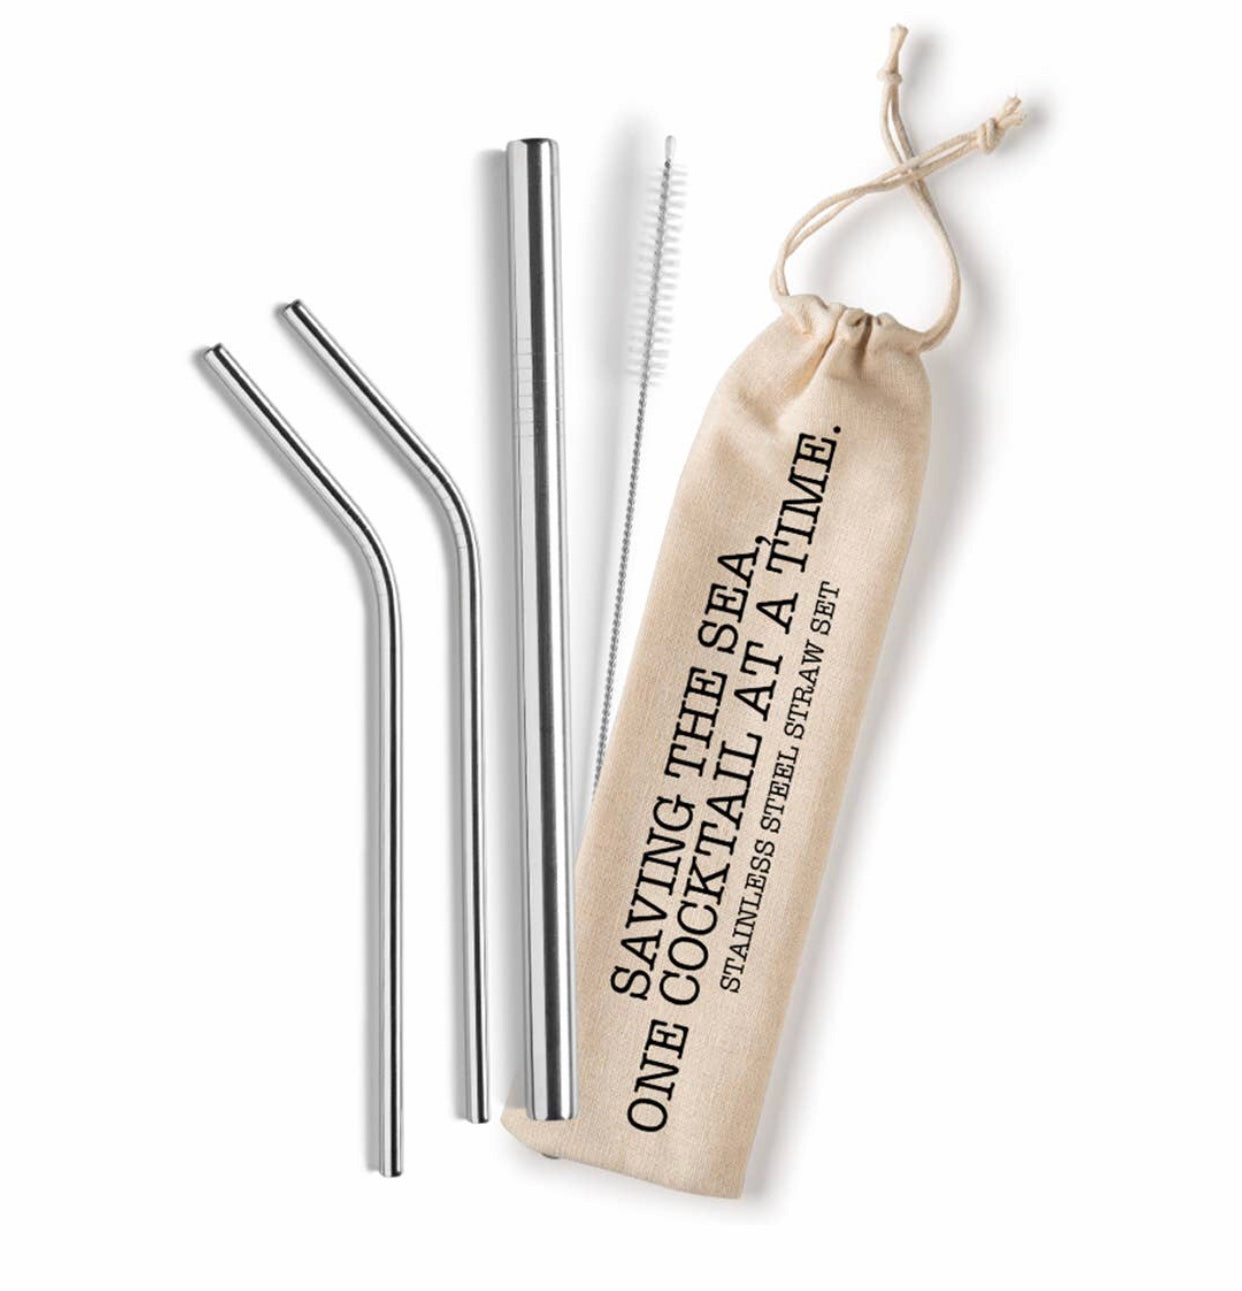 Saving the Sea - One Cocktail at a Time - Reusable Straw Set